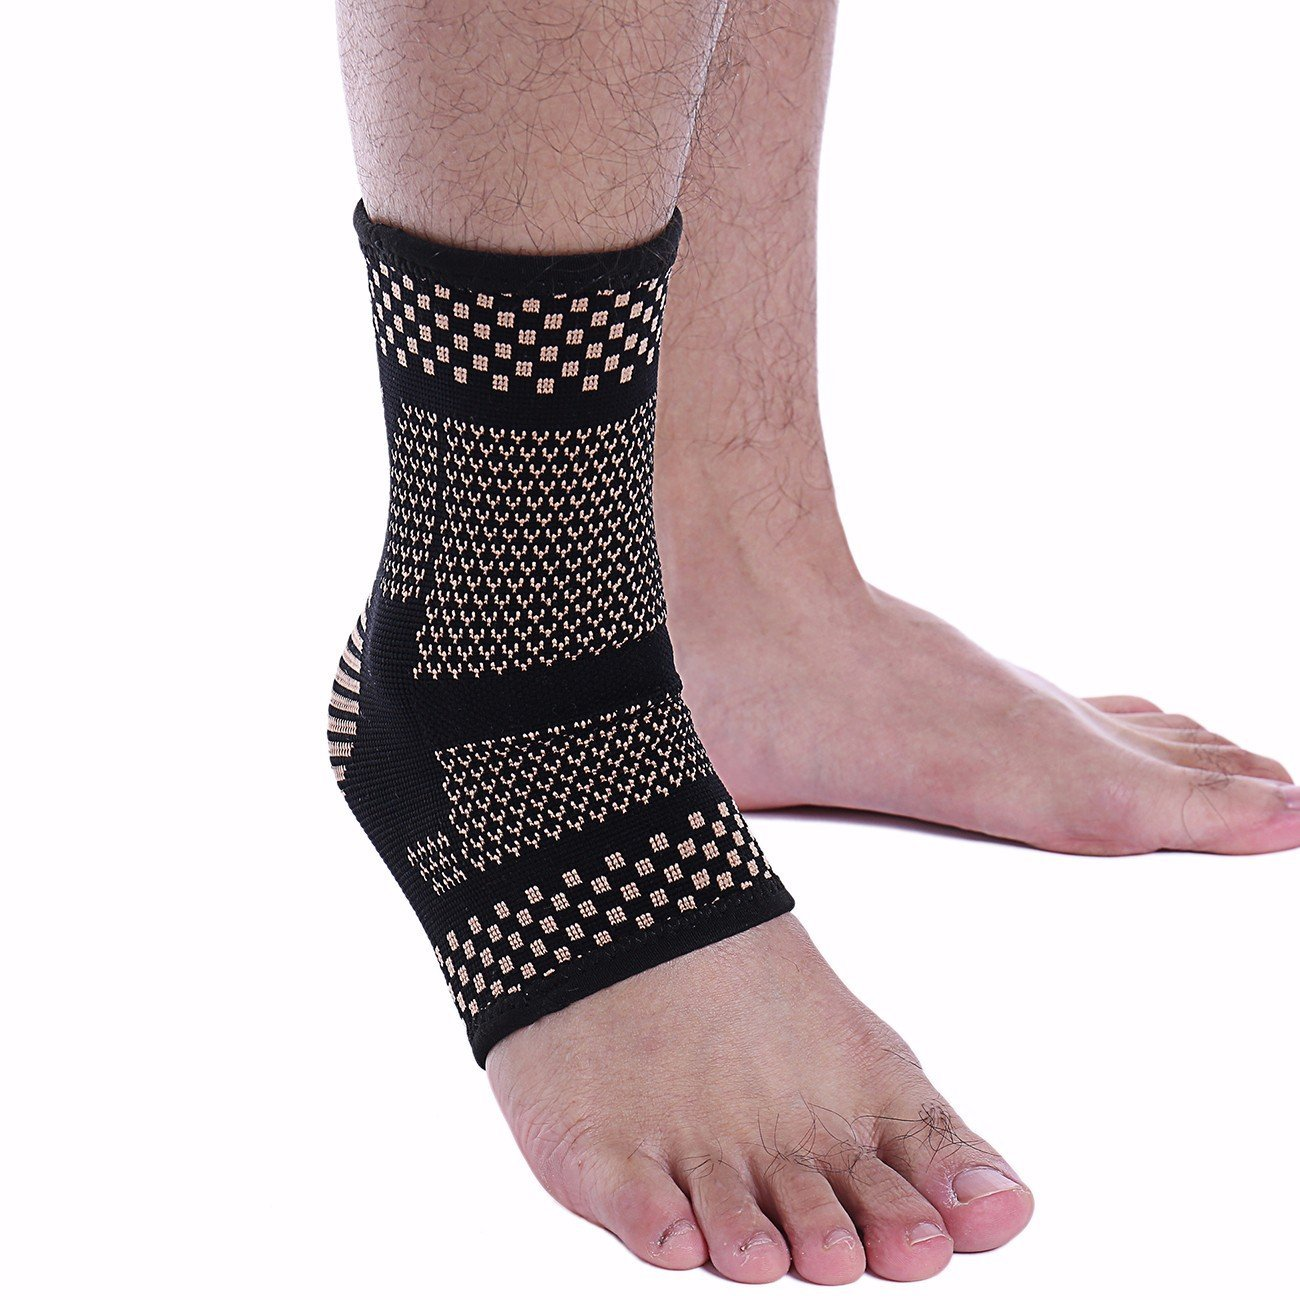 9273c8c6797d Get Quotations · KIWI RATA Compression Wrap Support. The Best Ankle Brace  for Reduce Swelling, Stabilizing Ligaments